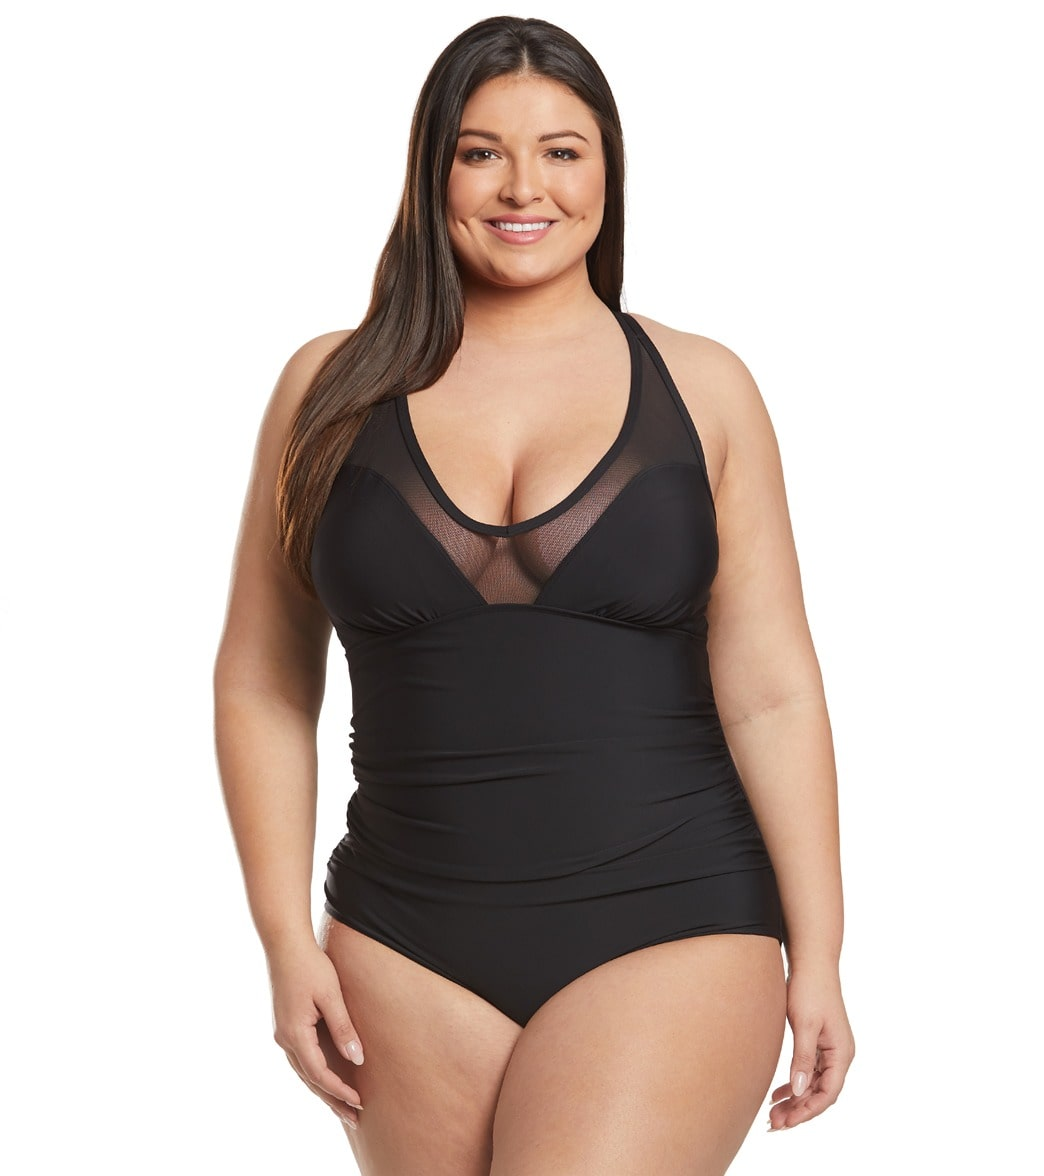 62d1ad9b04d Speedo Plus Size V-Neck Mesh One Piece Swimsuit at SwimOutlet.com - Free  Shipping